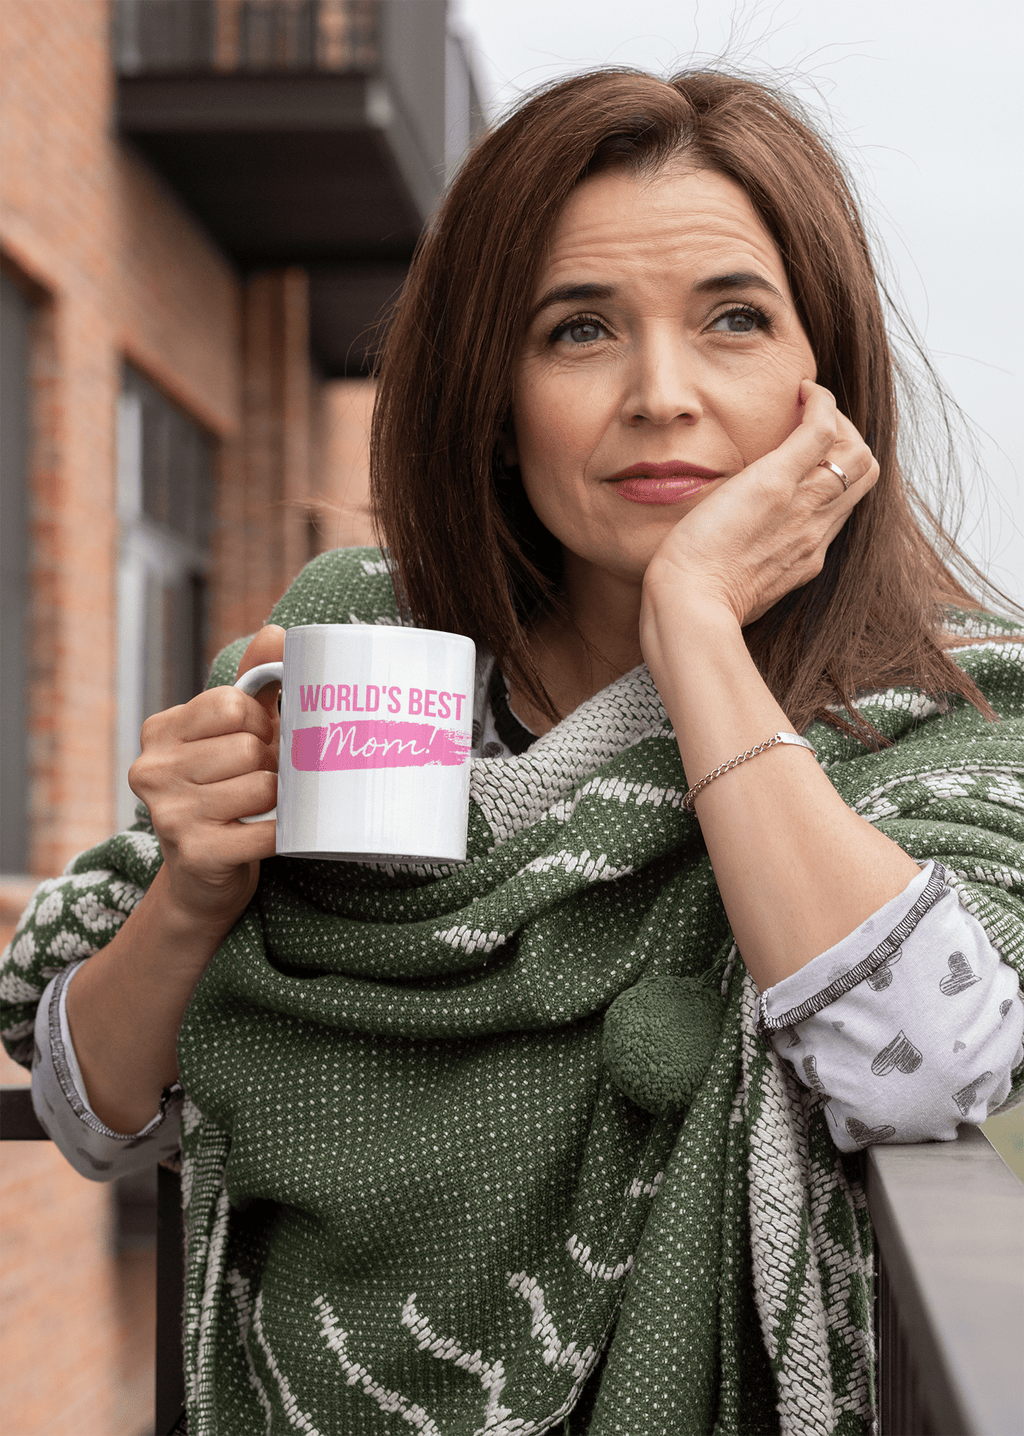 Miss Celebrate World's Best Mom Mug